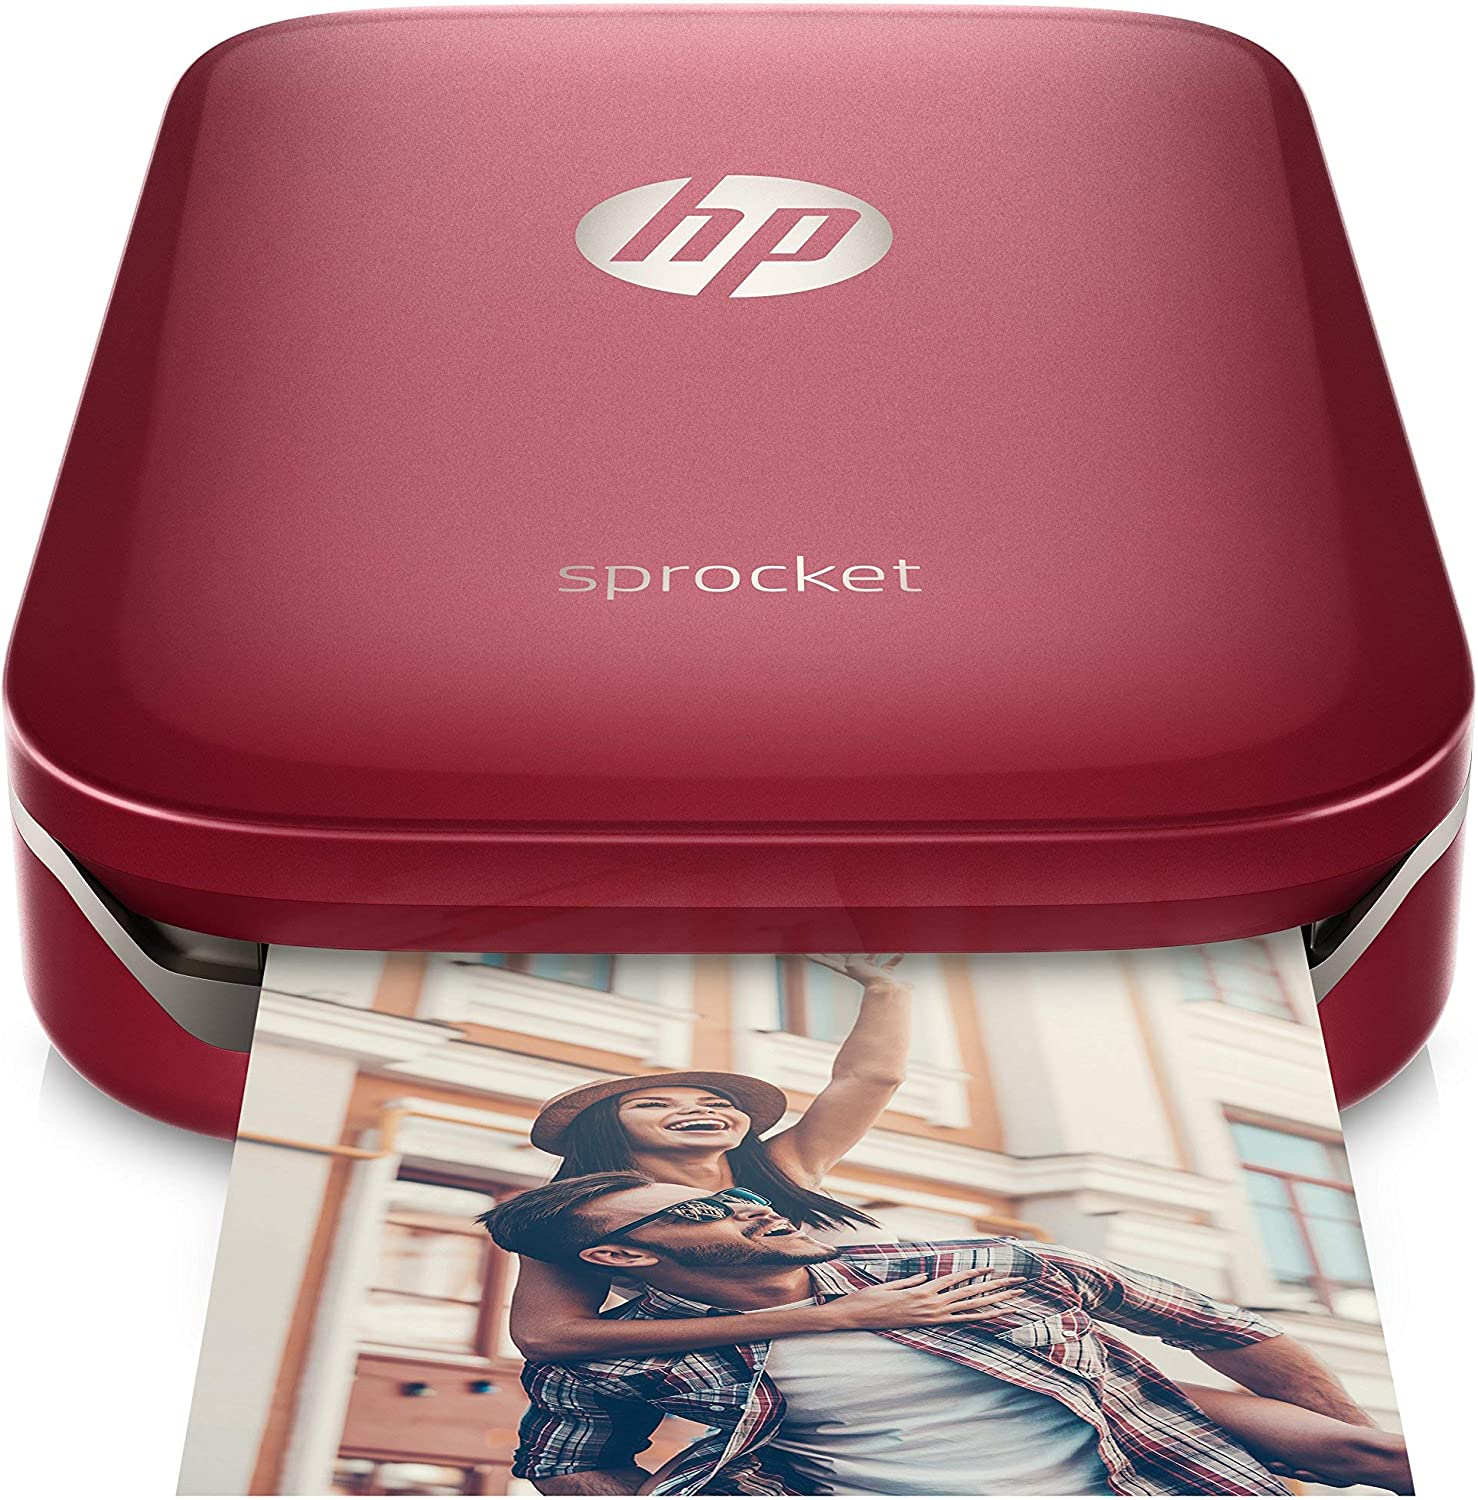 HP Sprocket Portable Photo Printer, Print Social Media Photos on 2x3 Sticky-Backed Paper - Red (Z3Z93A) (Renewed)